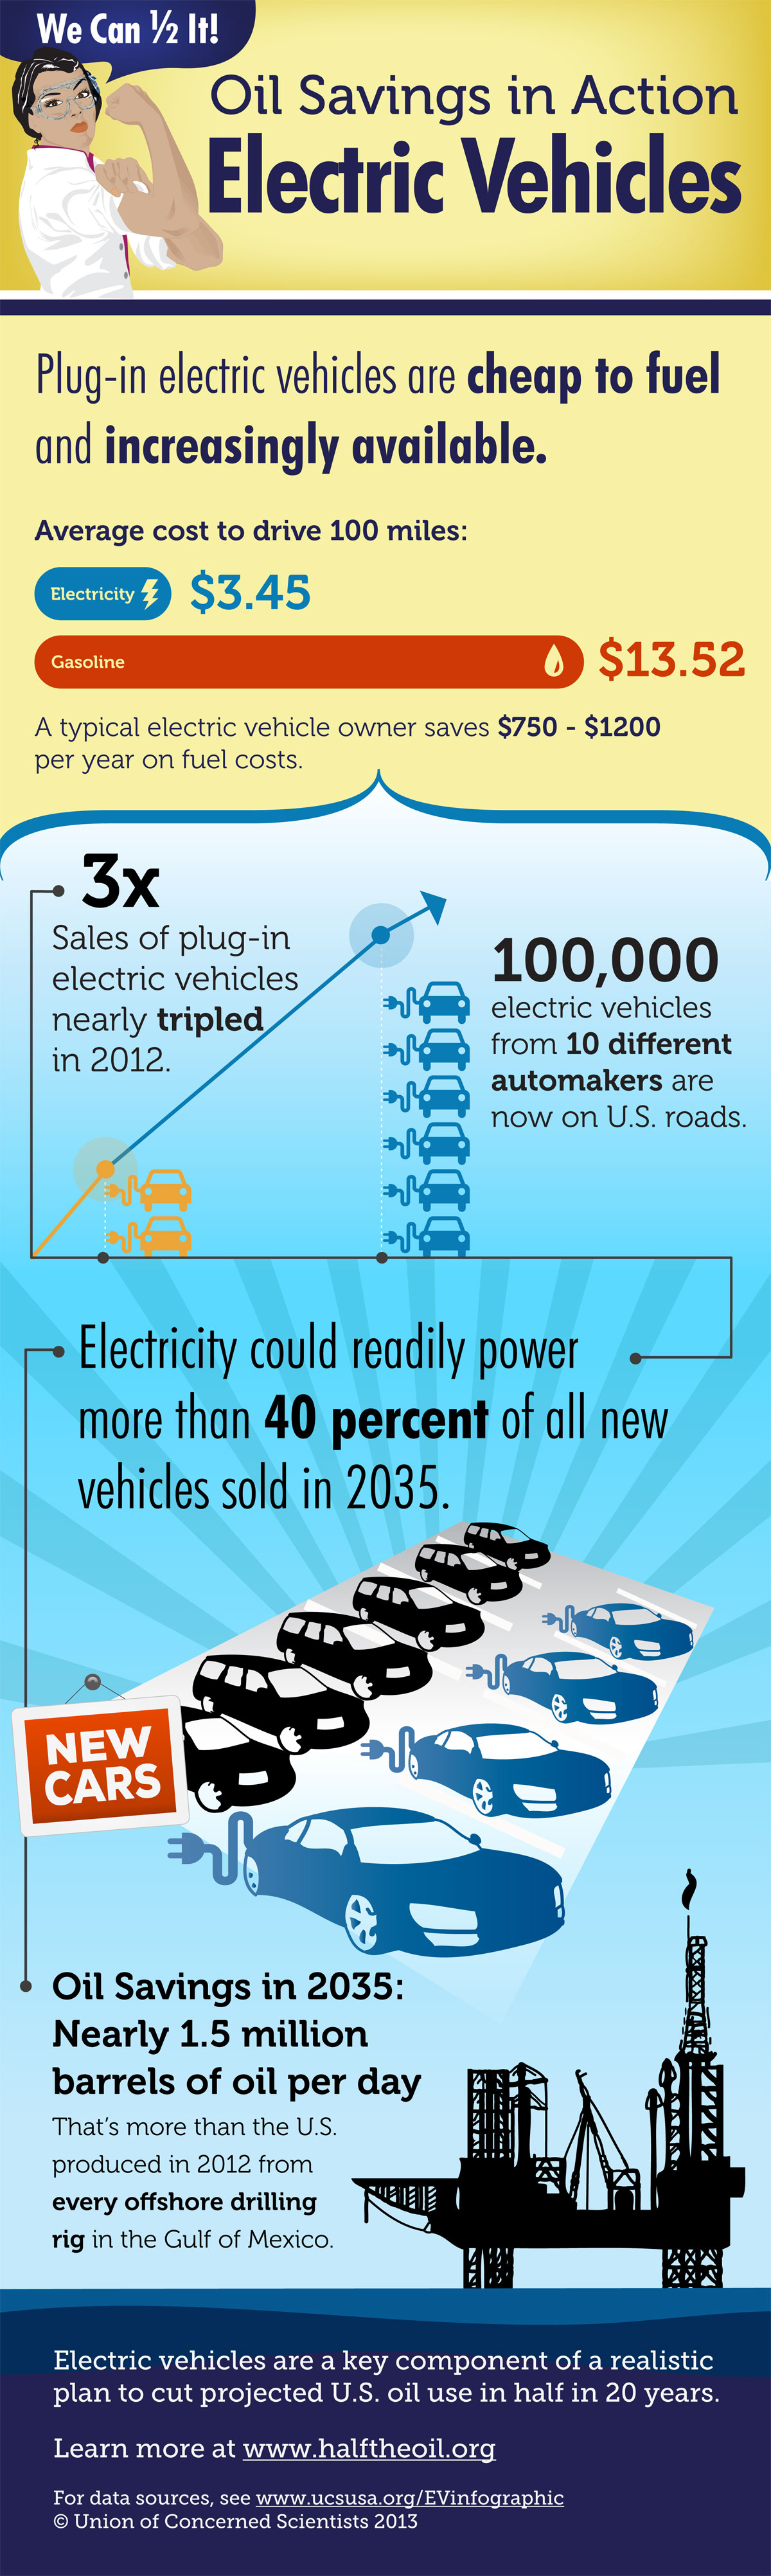 Oil savings in action electric vehicles